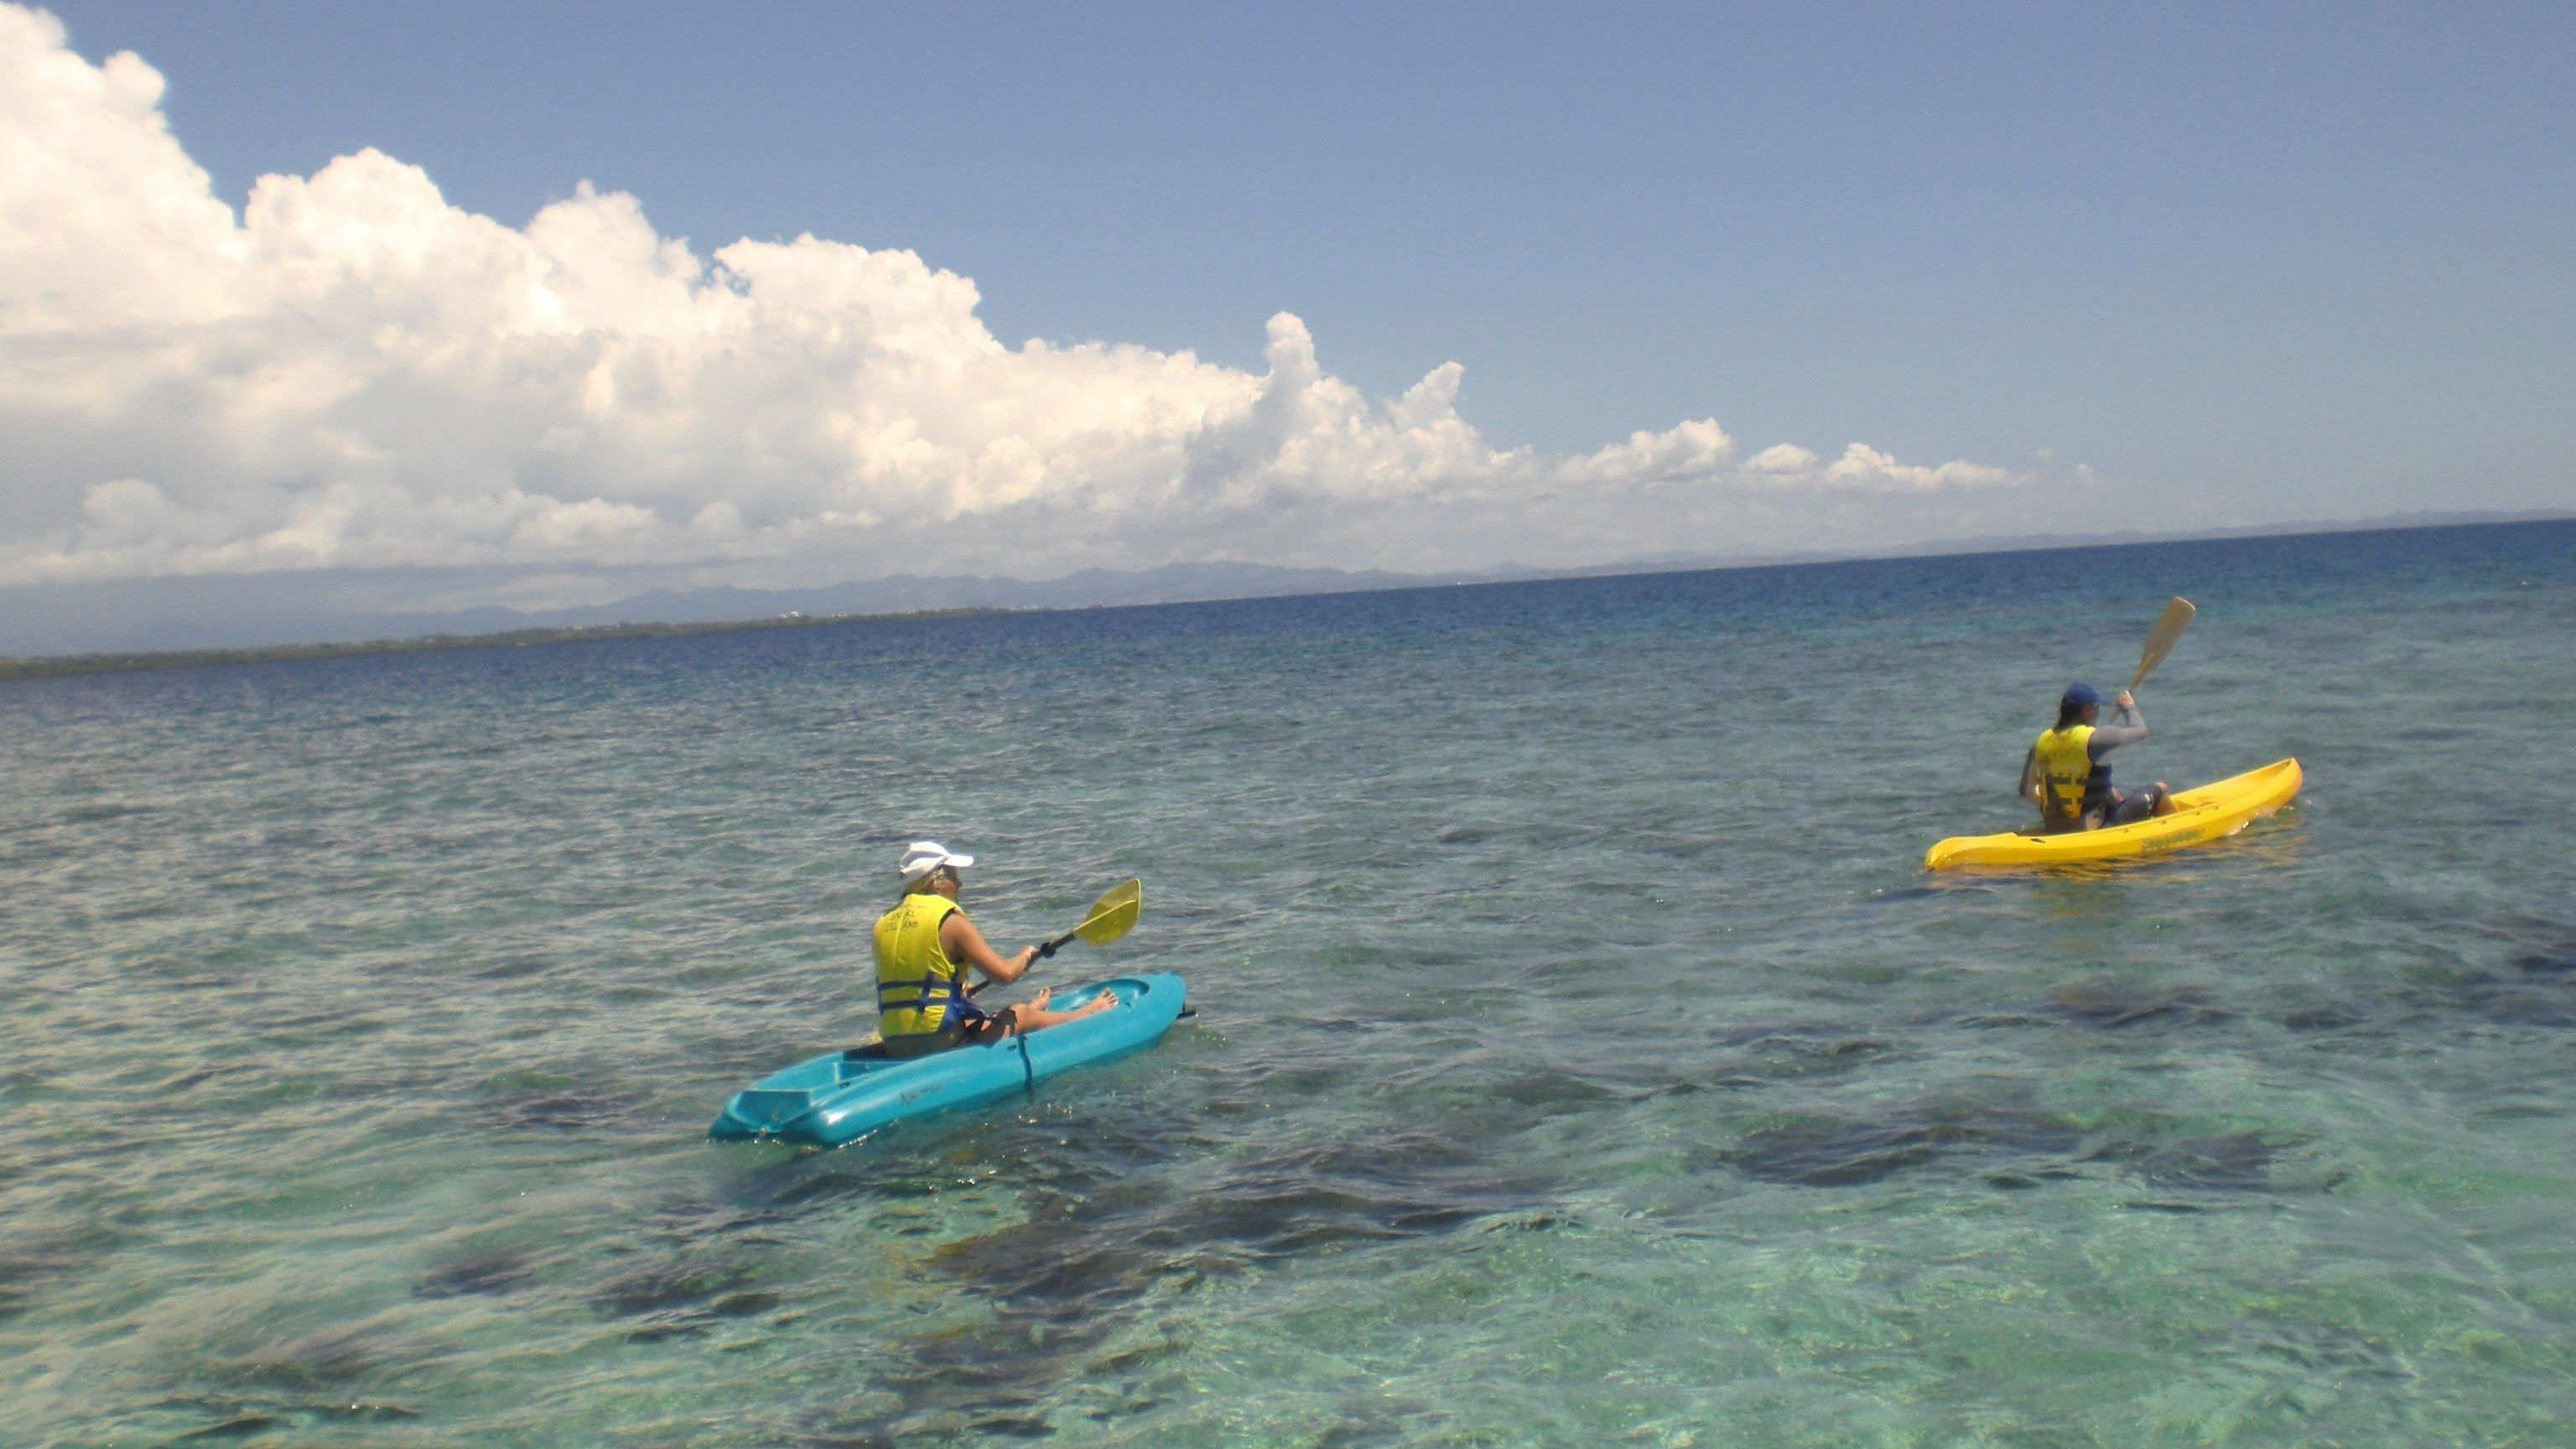 kayakers out in the water in Fiji